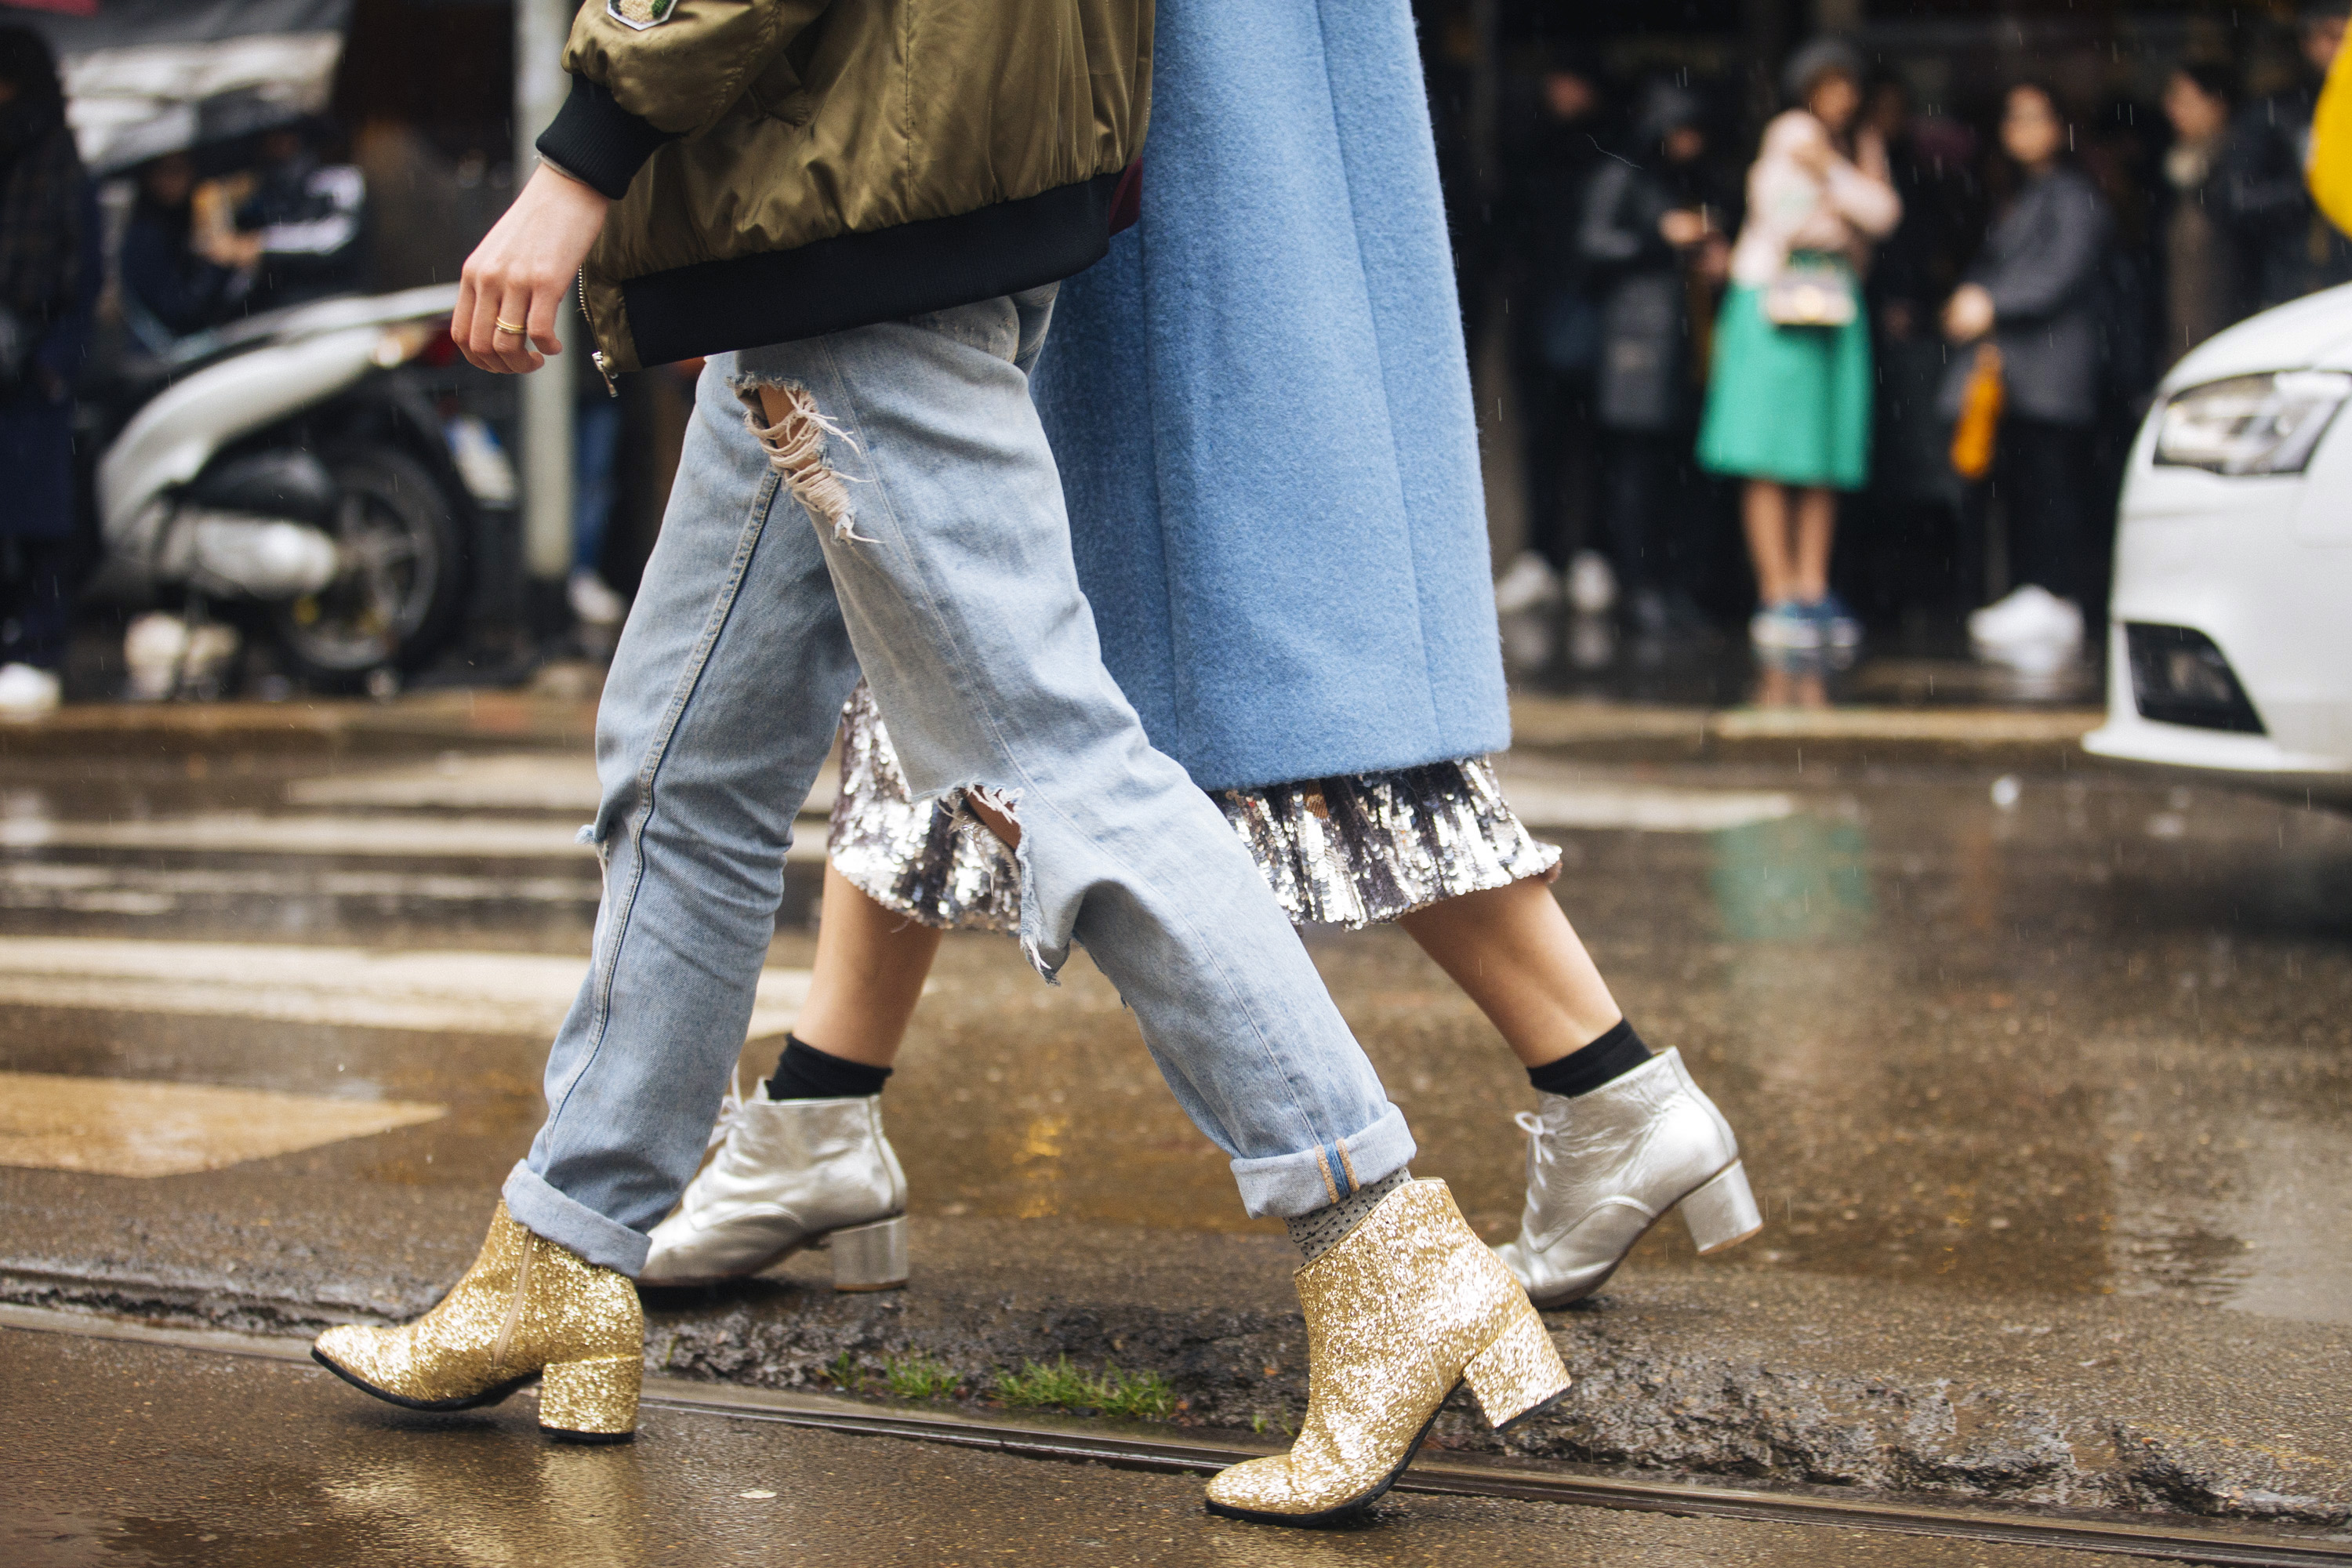 gold ankle booties with glitter - Gold glitter booties spotted at the Dolce & Gabbana show at Metropol during Milan Fashion Week Fall/Winter 2016/17 on February 28, 2016 in Milan, Italy.